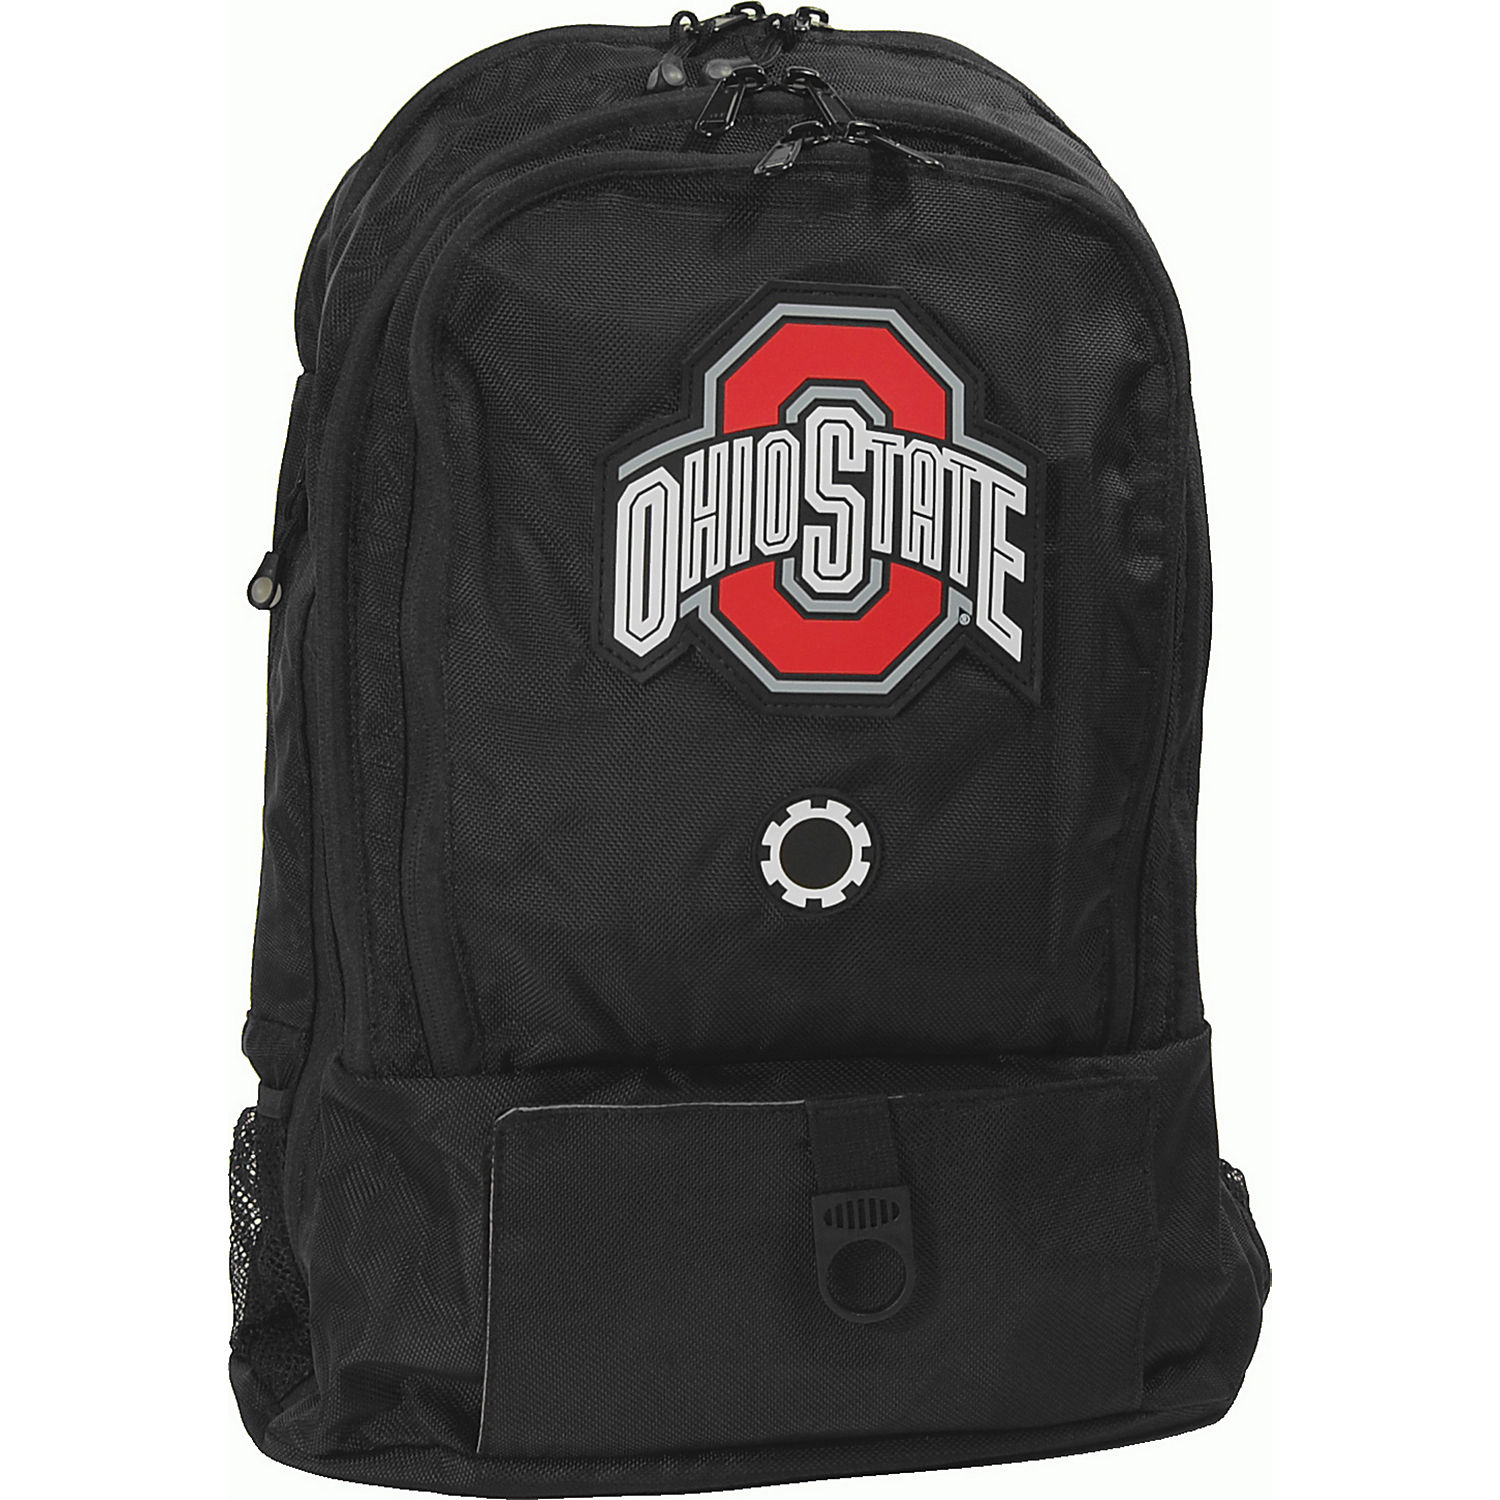 dadgear backpack collegiate series diaper bag ohio state university. Black Bedroom Furniture Sets. Home Design Ideas